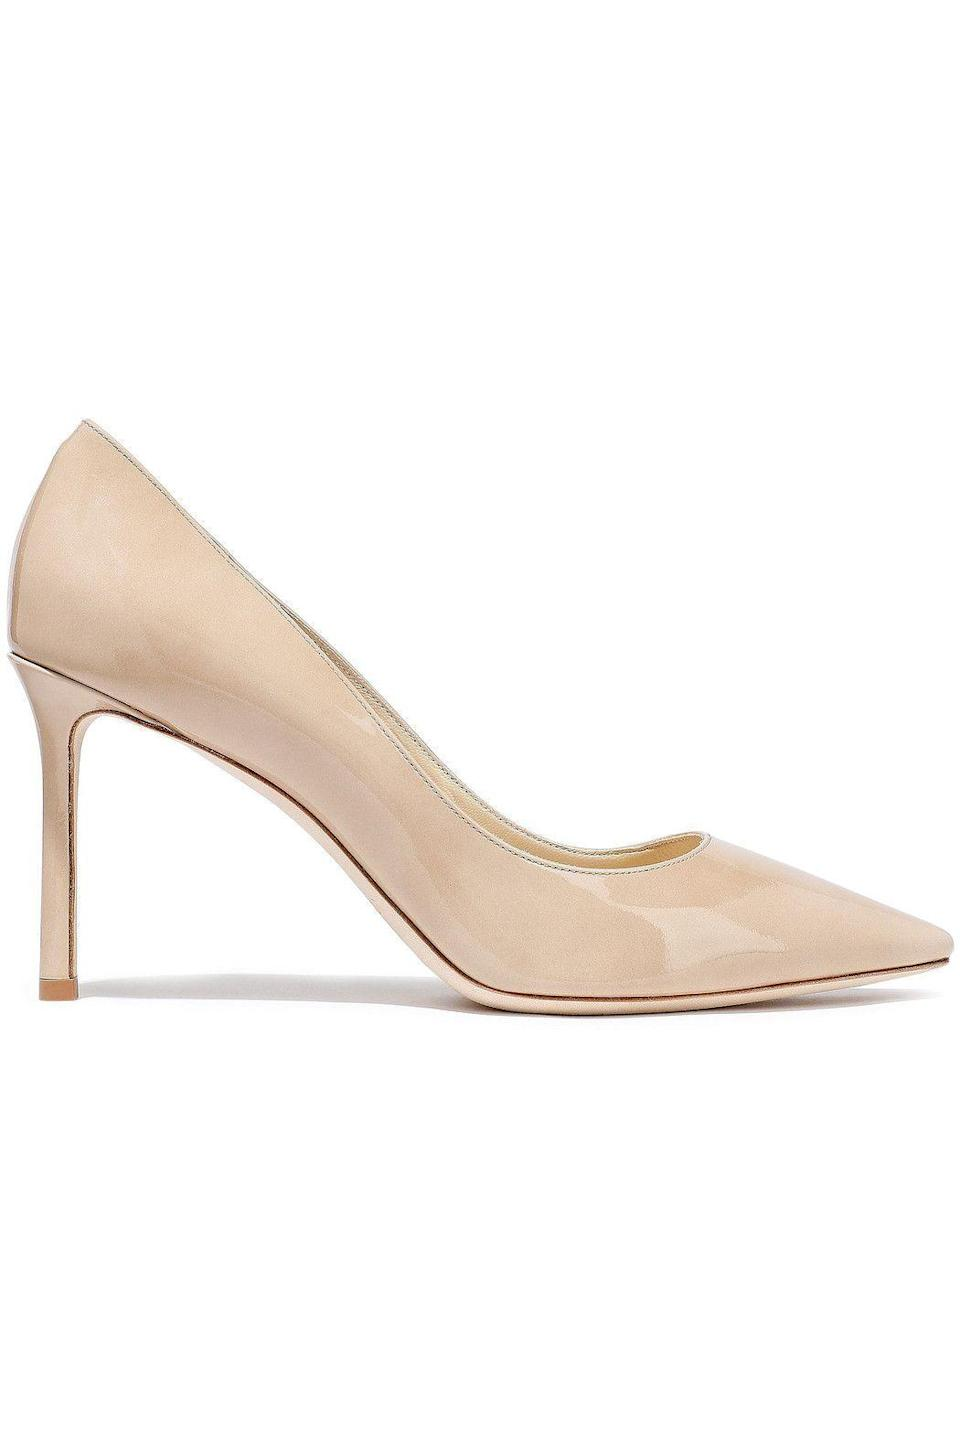 """<p><strong>JIMMY CHOO</strong></p><p>theoutnet.com</p><p><strong>$396.00</strong></p><p><a href=""""https://go.redirectingat.com?id=74968X1596630&url=https%3A%2F%2Fwww.theoutnet.com%2Fen-us%2Fshop%2Fproduct%2Fjimmy-choo%2Fpumps%2Fhigh-heel-pumps%2Fromy-85-patent-leather-pumps%2F666467151602264&sref=https%3A%2F%2Fwww.redbookmag.com%2Ffashion%2Fg34807151%2Fthe-outnets-black-friday-sale-2020%2F"""" rel=""""nofollow noopener"""" target=""""_blank"""" data-ylk=""""slk:Shop Now"""" class=""""link rapid-noclick-resp"""">Shop Now</a></p><p>A pair of nude pumps belongs in everyone's closet. </p>"""